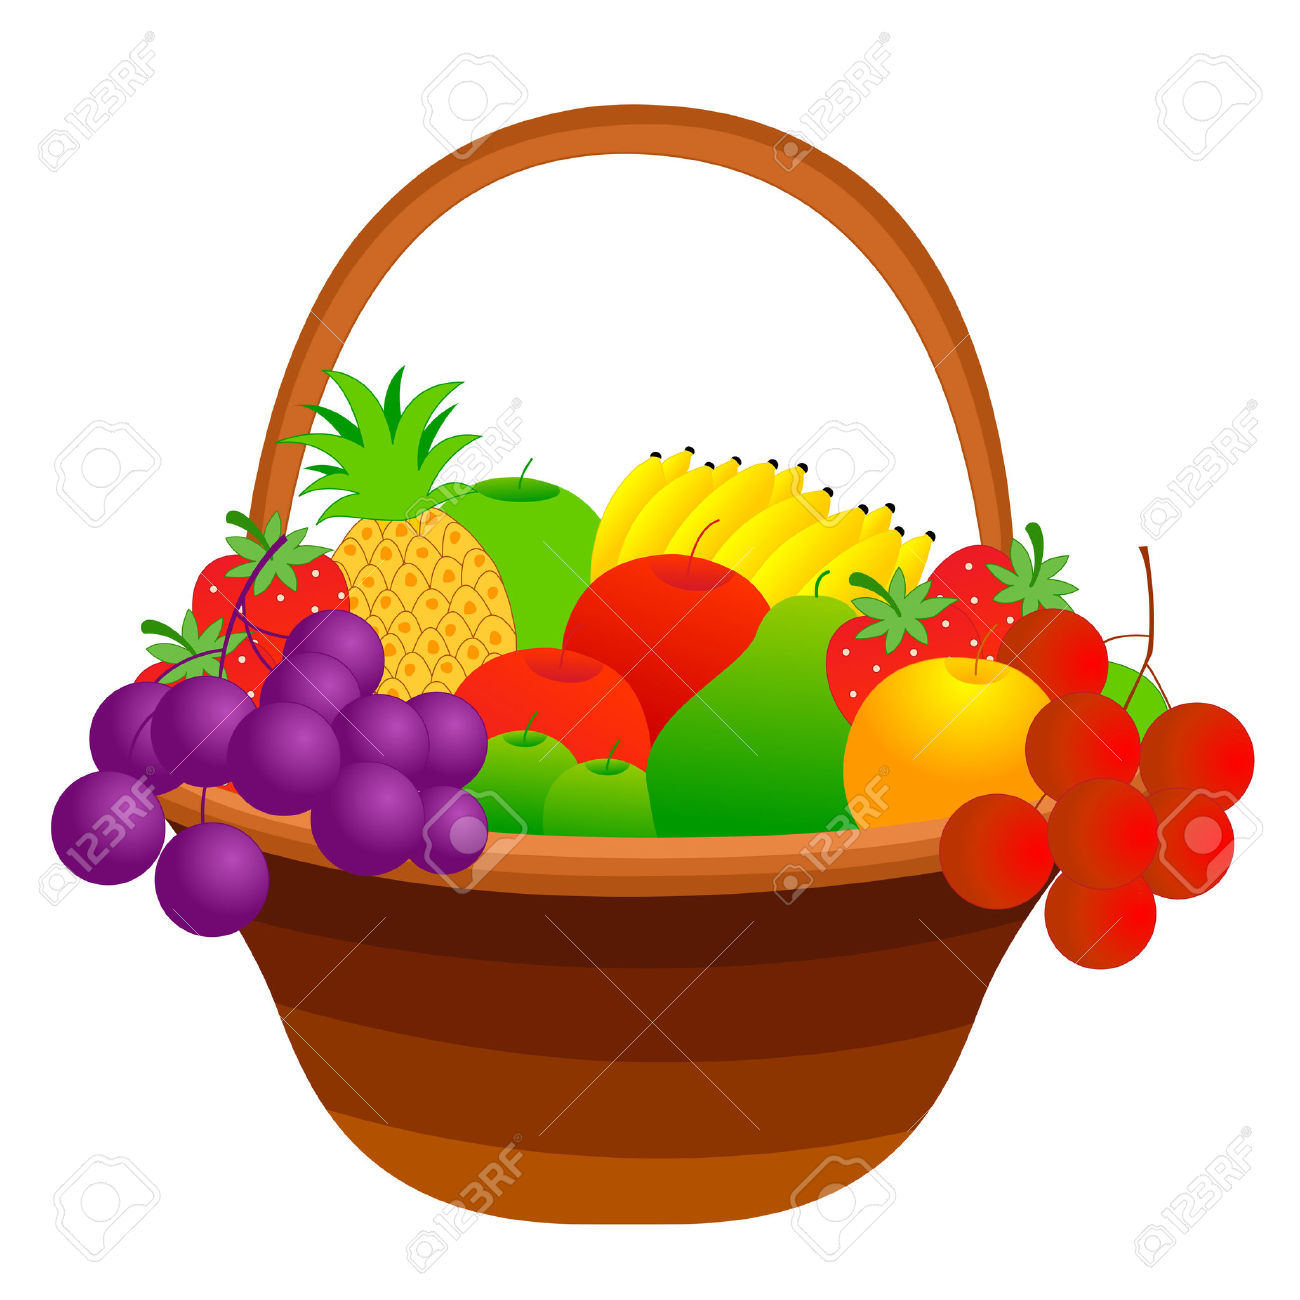 Fruitbasket clipart jpg black and white download Fruit Baskets Clipart | Free download best Fruit Baskets Clipart on ... jpg black and white download